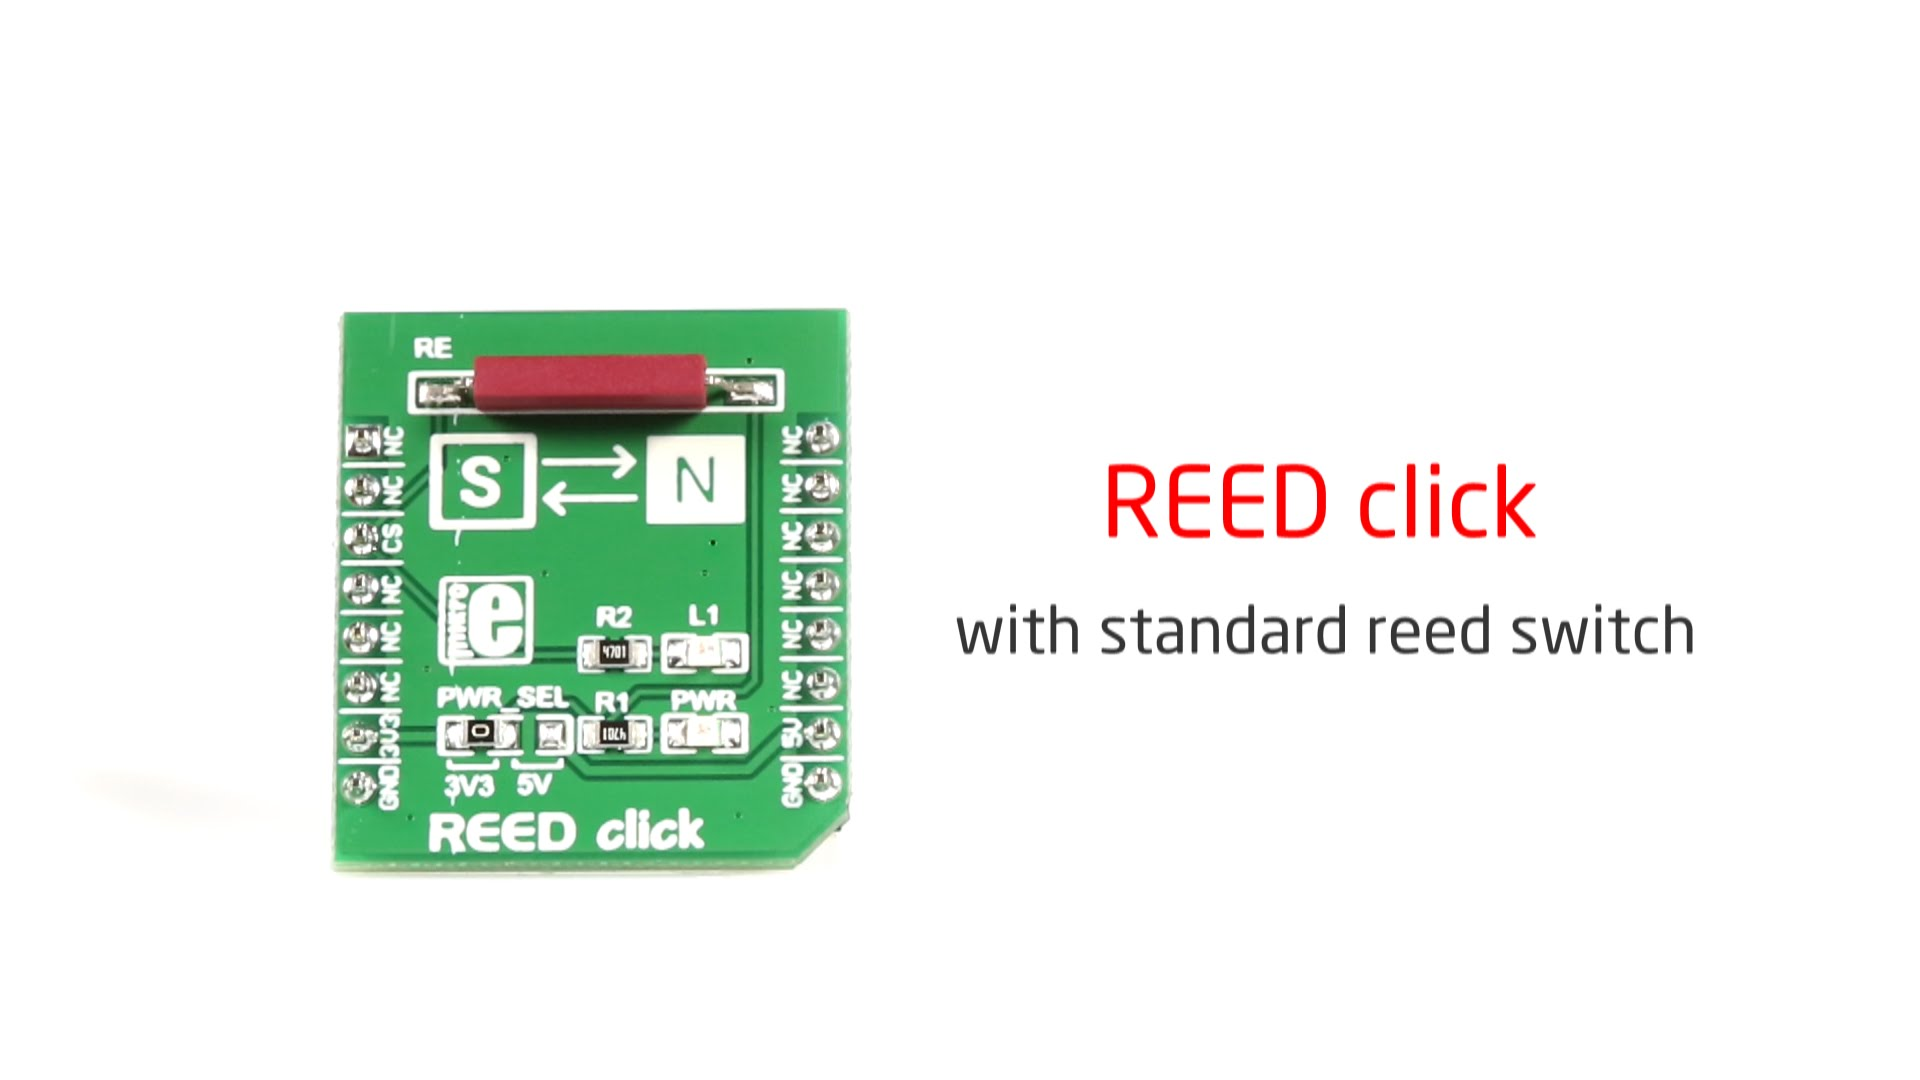 Reed click released